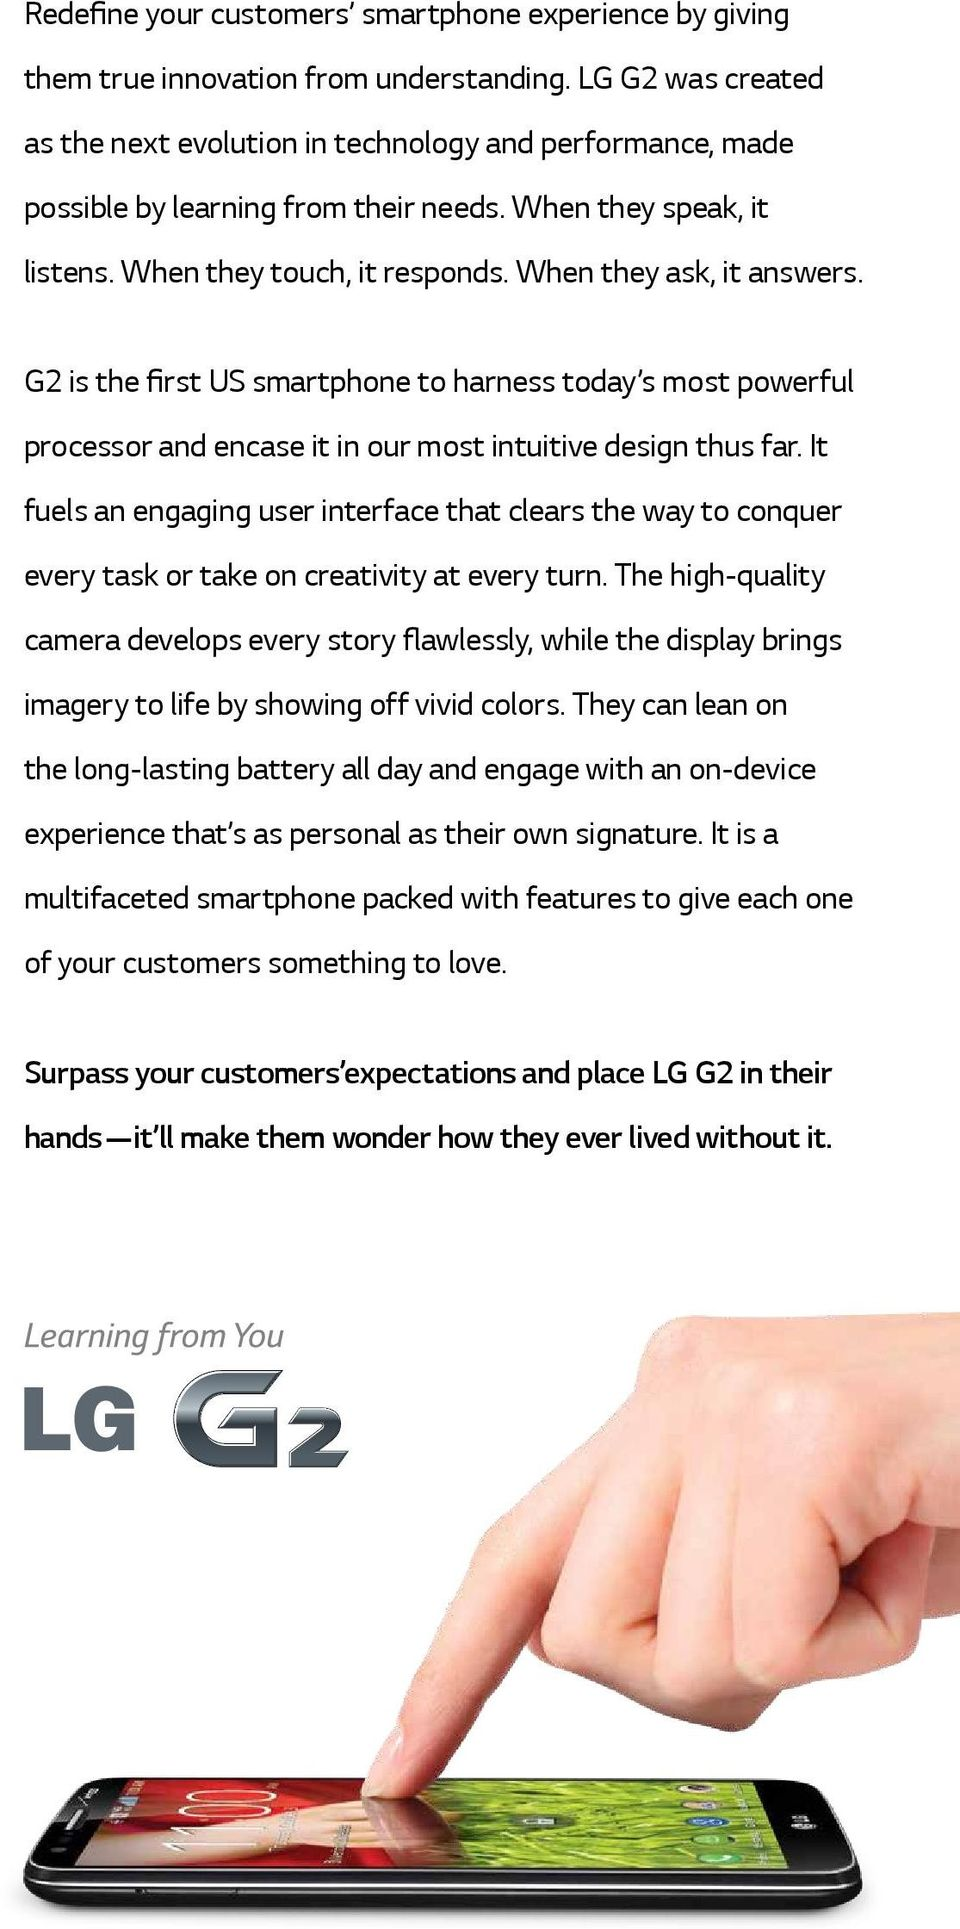 G2 is the first US smartphone to harness today s most powerful processor and encase it in our most intuitive design thus far.